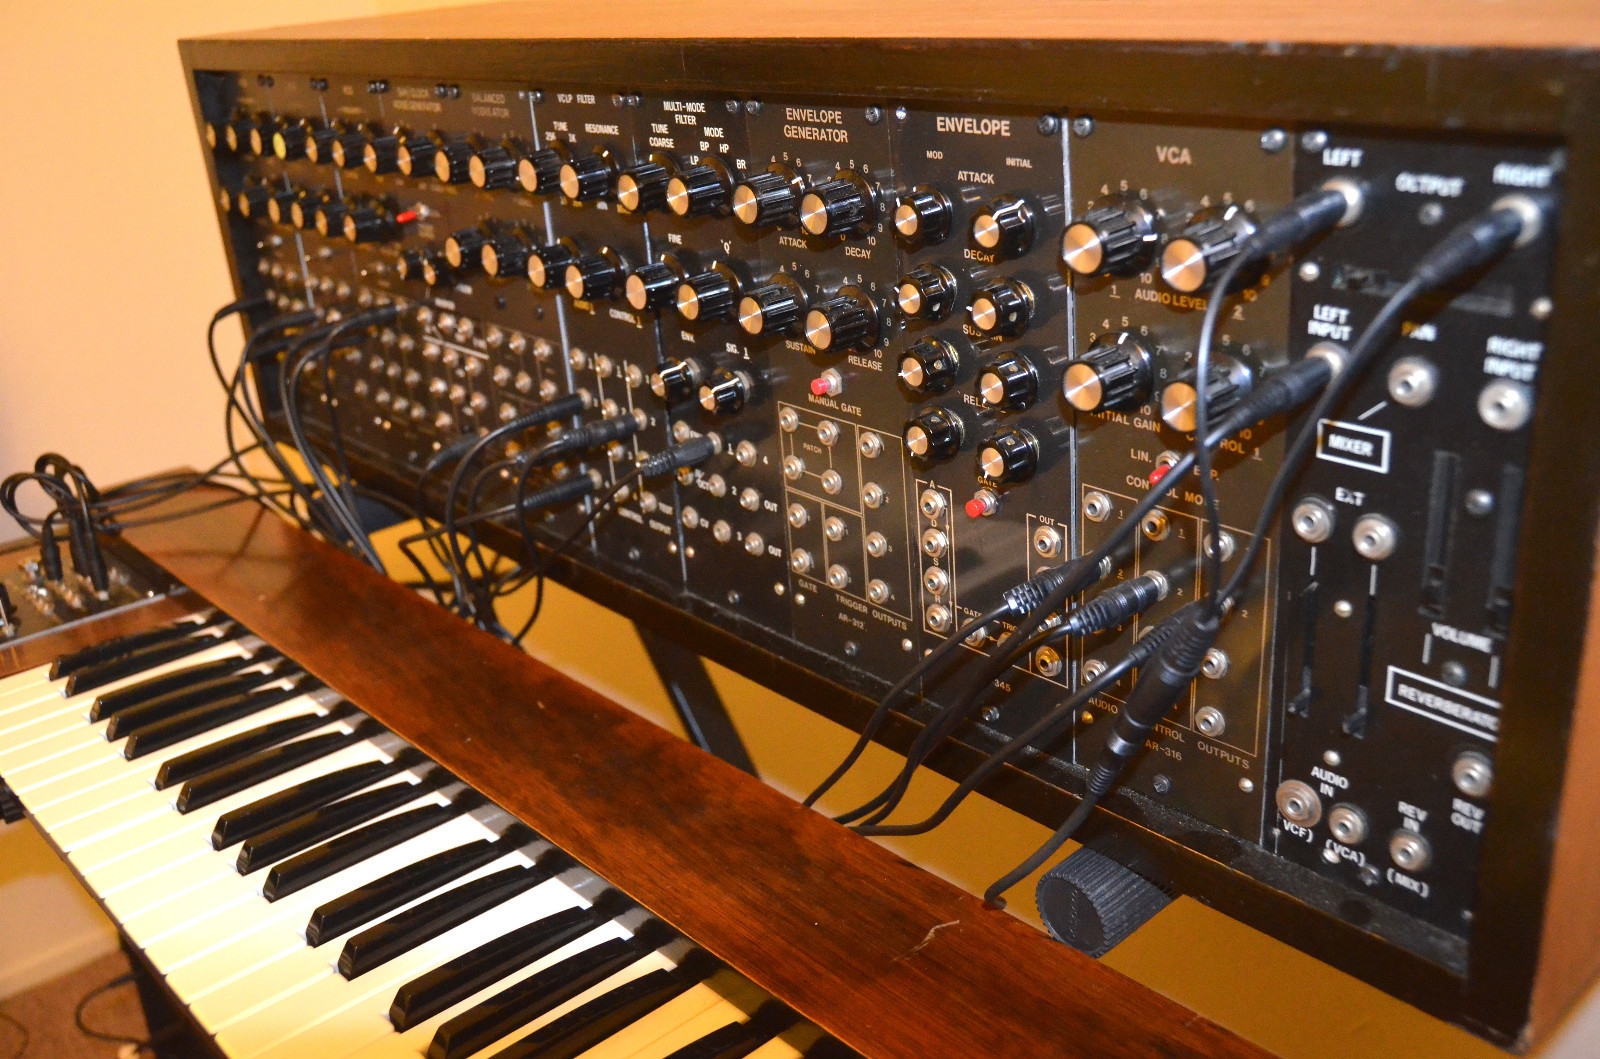 Matrixsynth Super Rare Aries Modular Vintage Analog Synth Schematics Vco 3 It Comes With A Matching Original Keyboard Patch Cords Extra Few Spare Knobs Complete Users Manual And Catalog Of